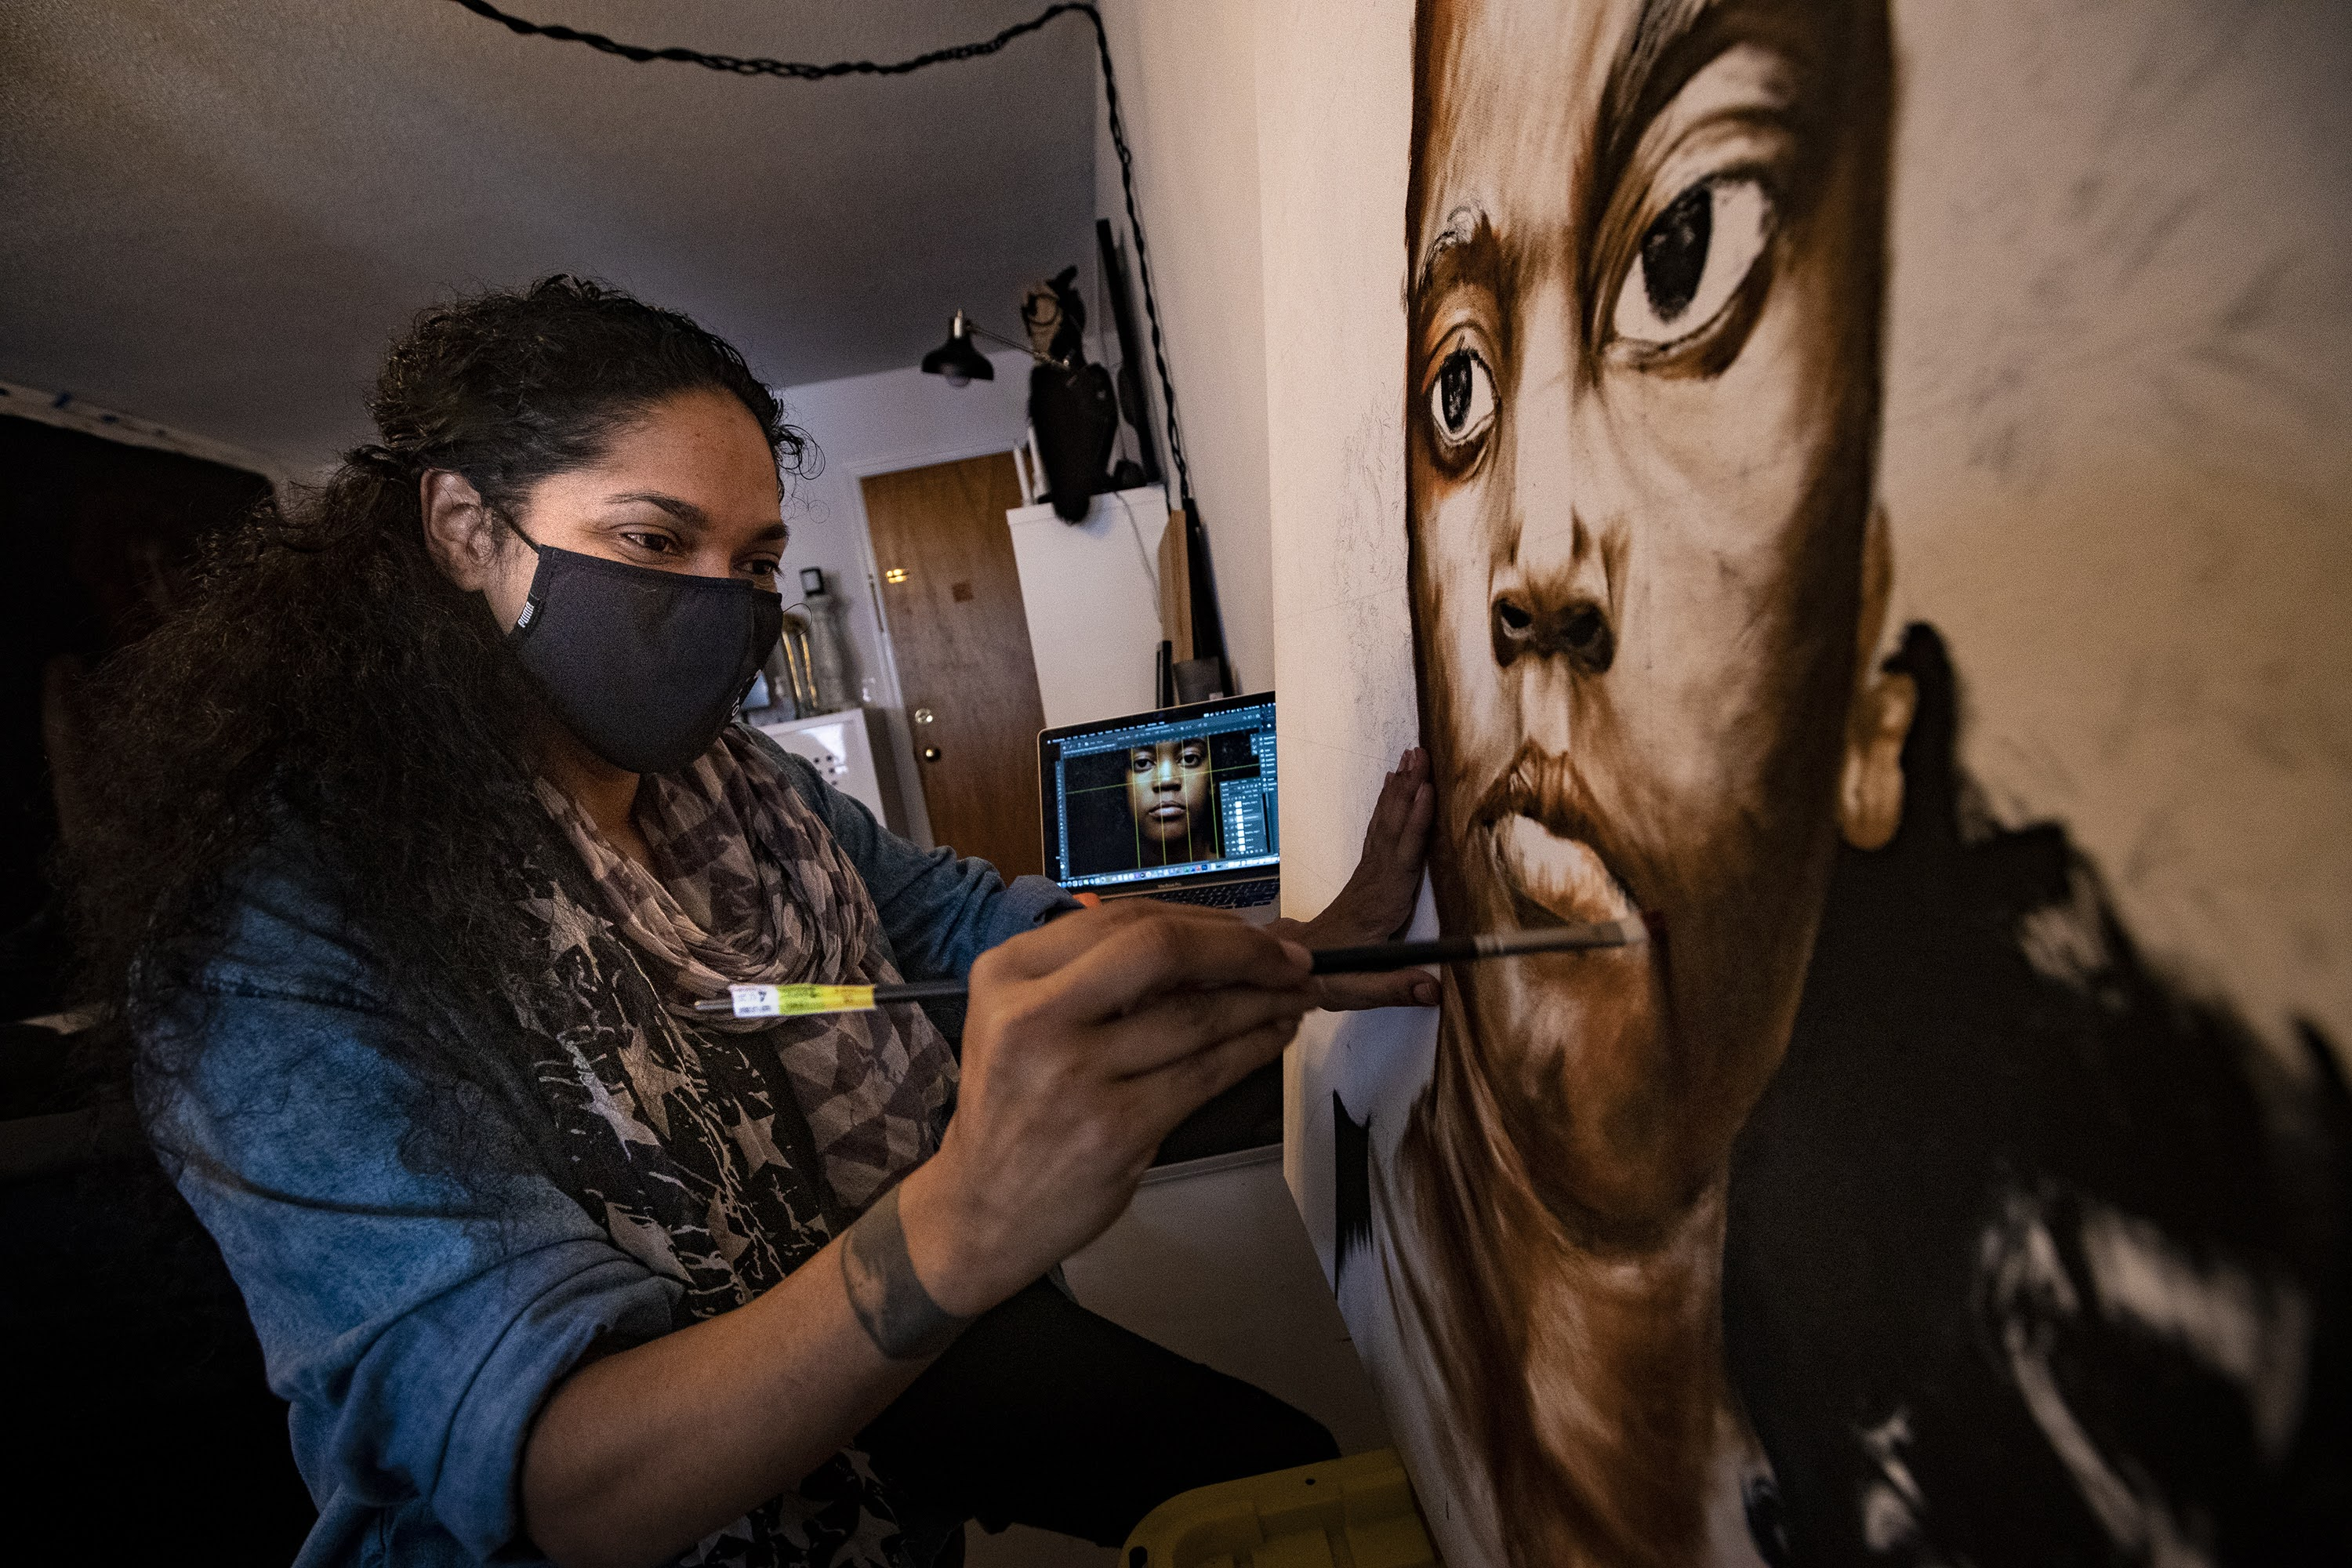 Artist Marla McLeod works on a piece featuring her niece at her studio in New Haven. (Jesse Costa/WBUR)